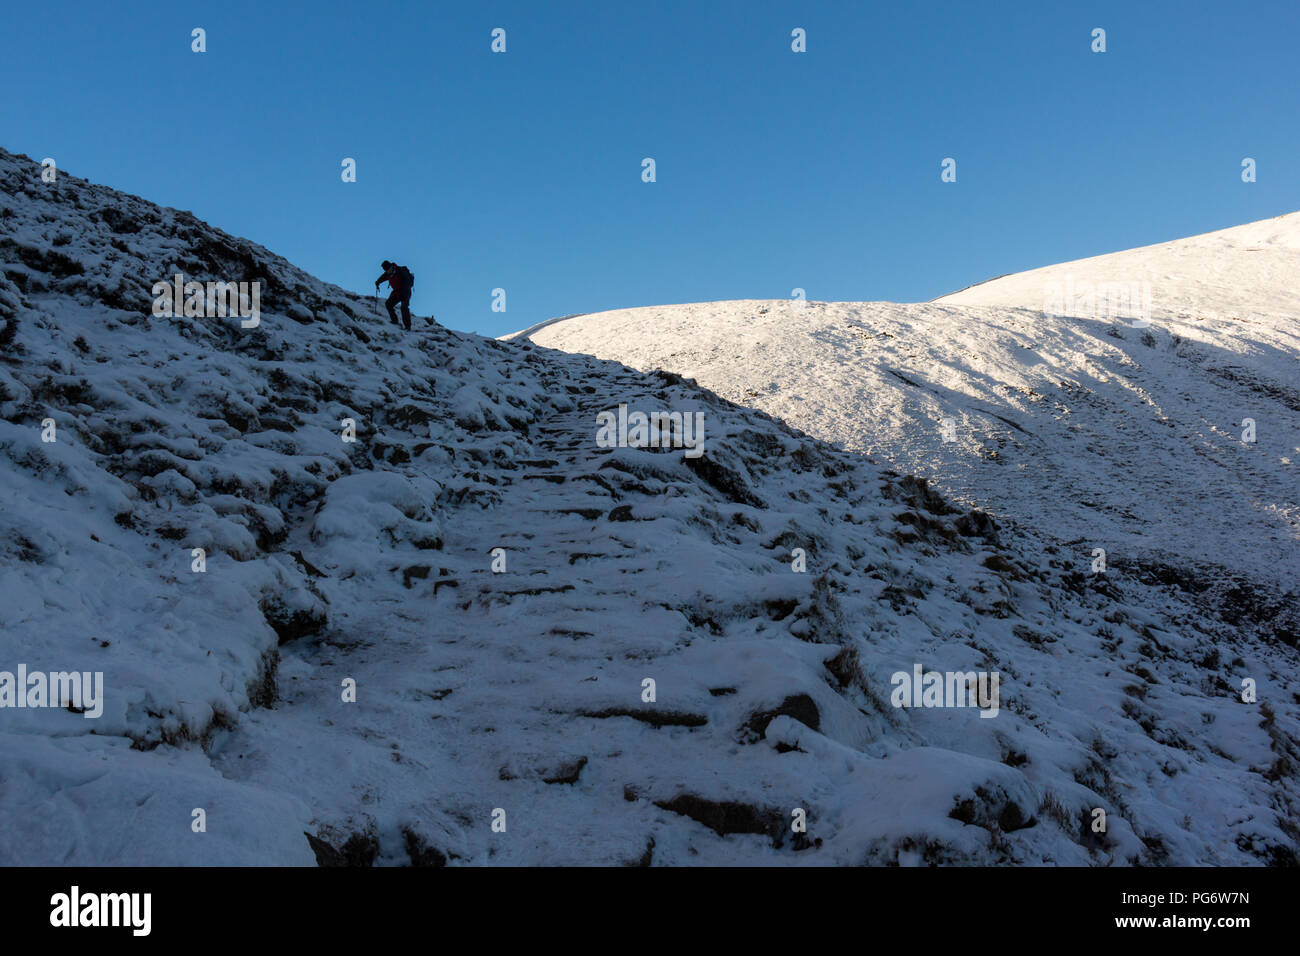 Hillwalker ascending steep ground over snow and ice in the Mourne Mountains. - Stock Image